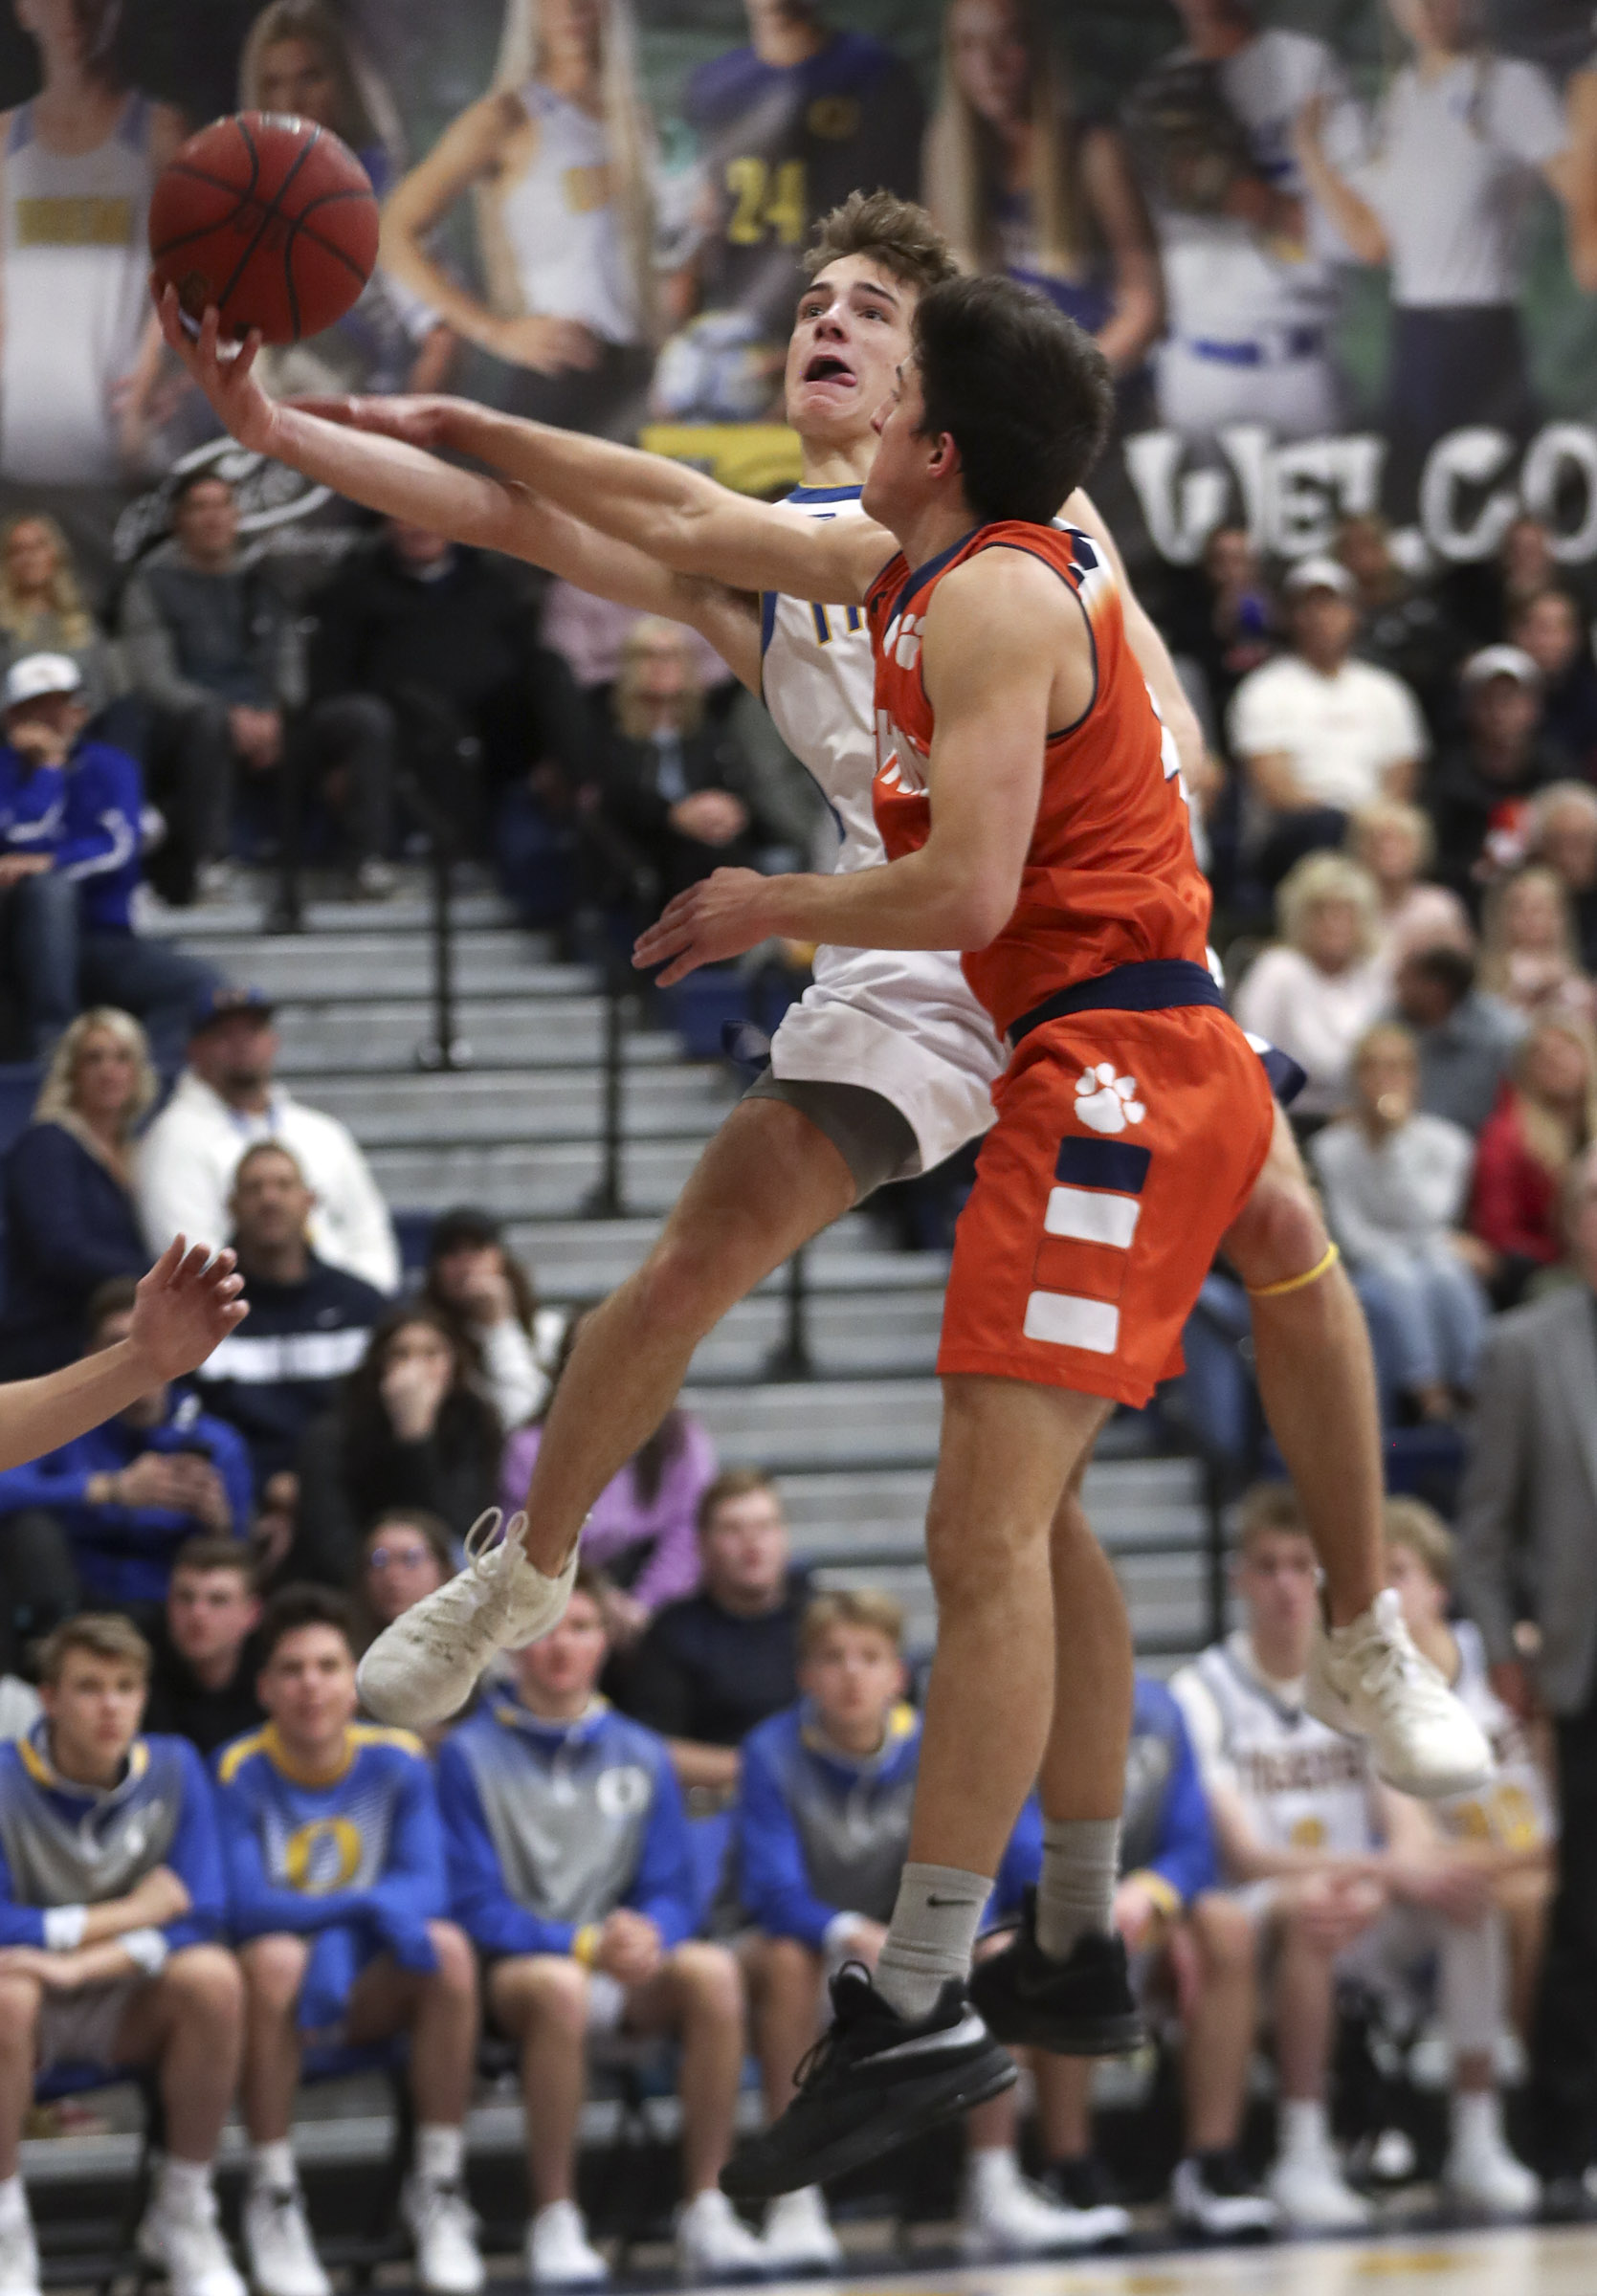 Orem's Taft Mitchell scoops up a shot for a basket and is fouled by Brighton's Justin Devashrayee during a 5A playoff basketball game in Orem on Friday, Feb. 21, 2020.